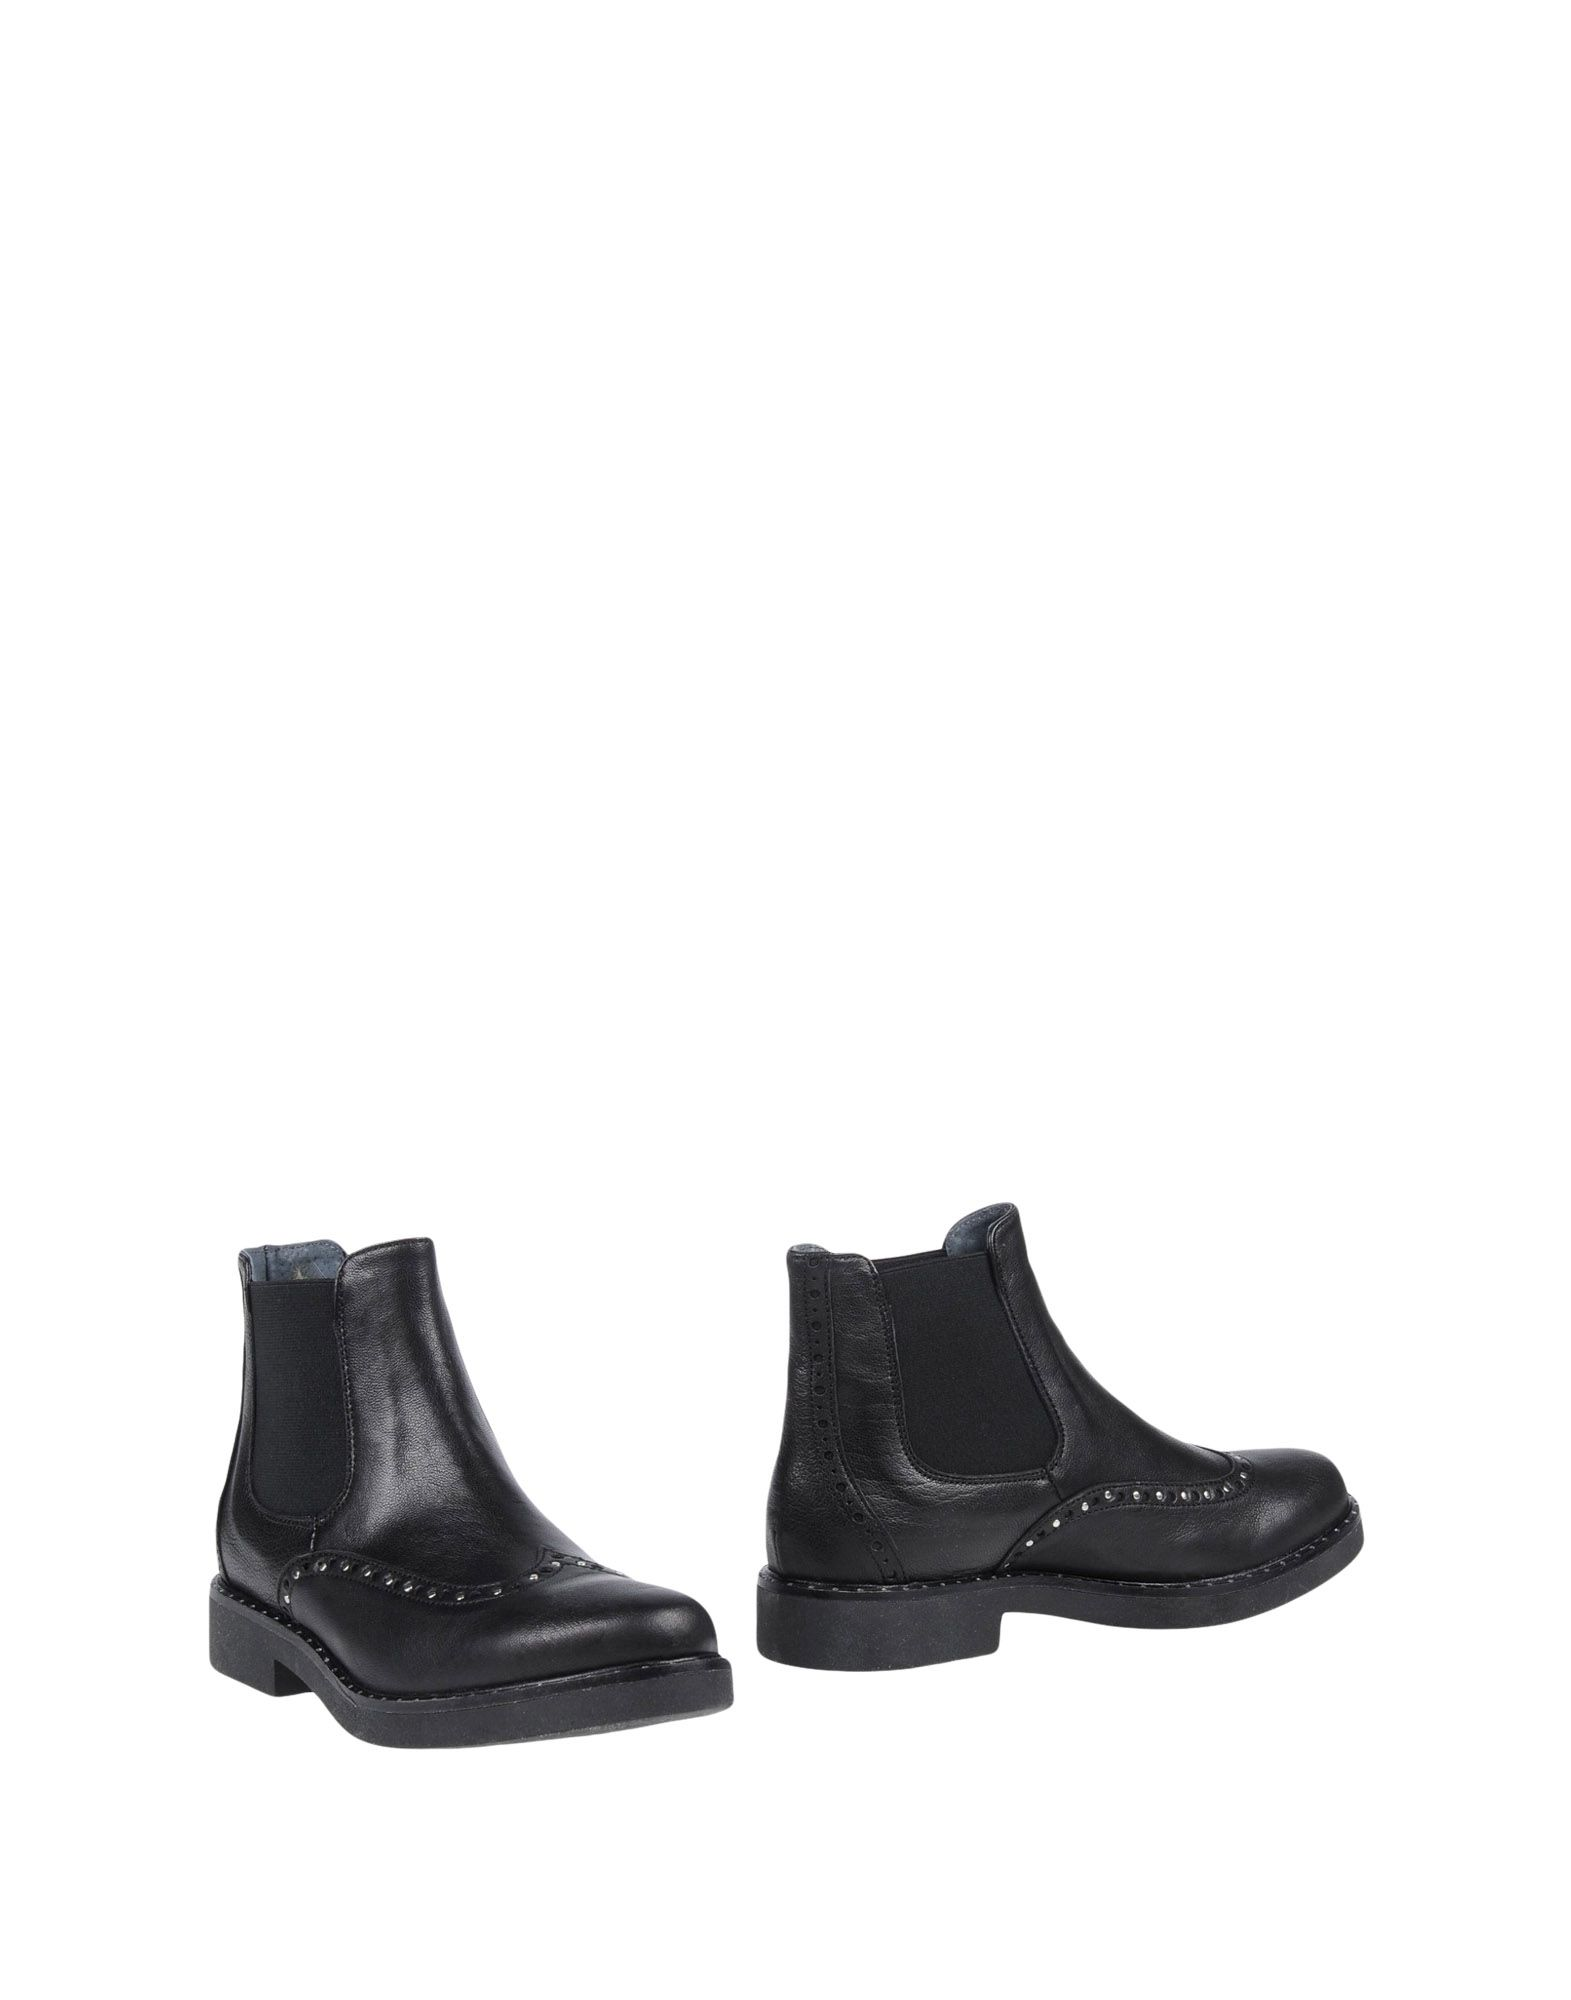 Chelsea Boots Boots Chelsea Oroscuro Donna - 11456068VQ a4e9a0